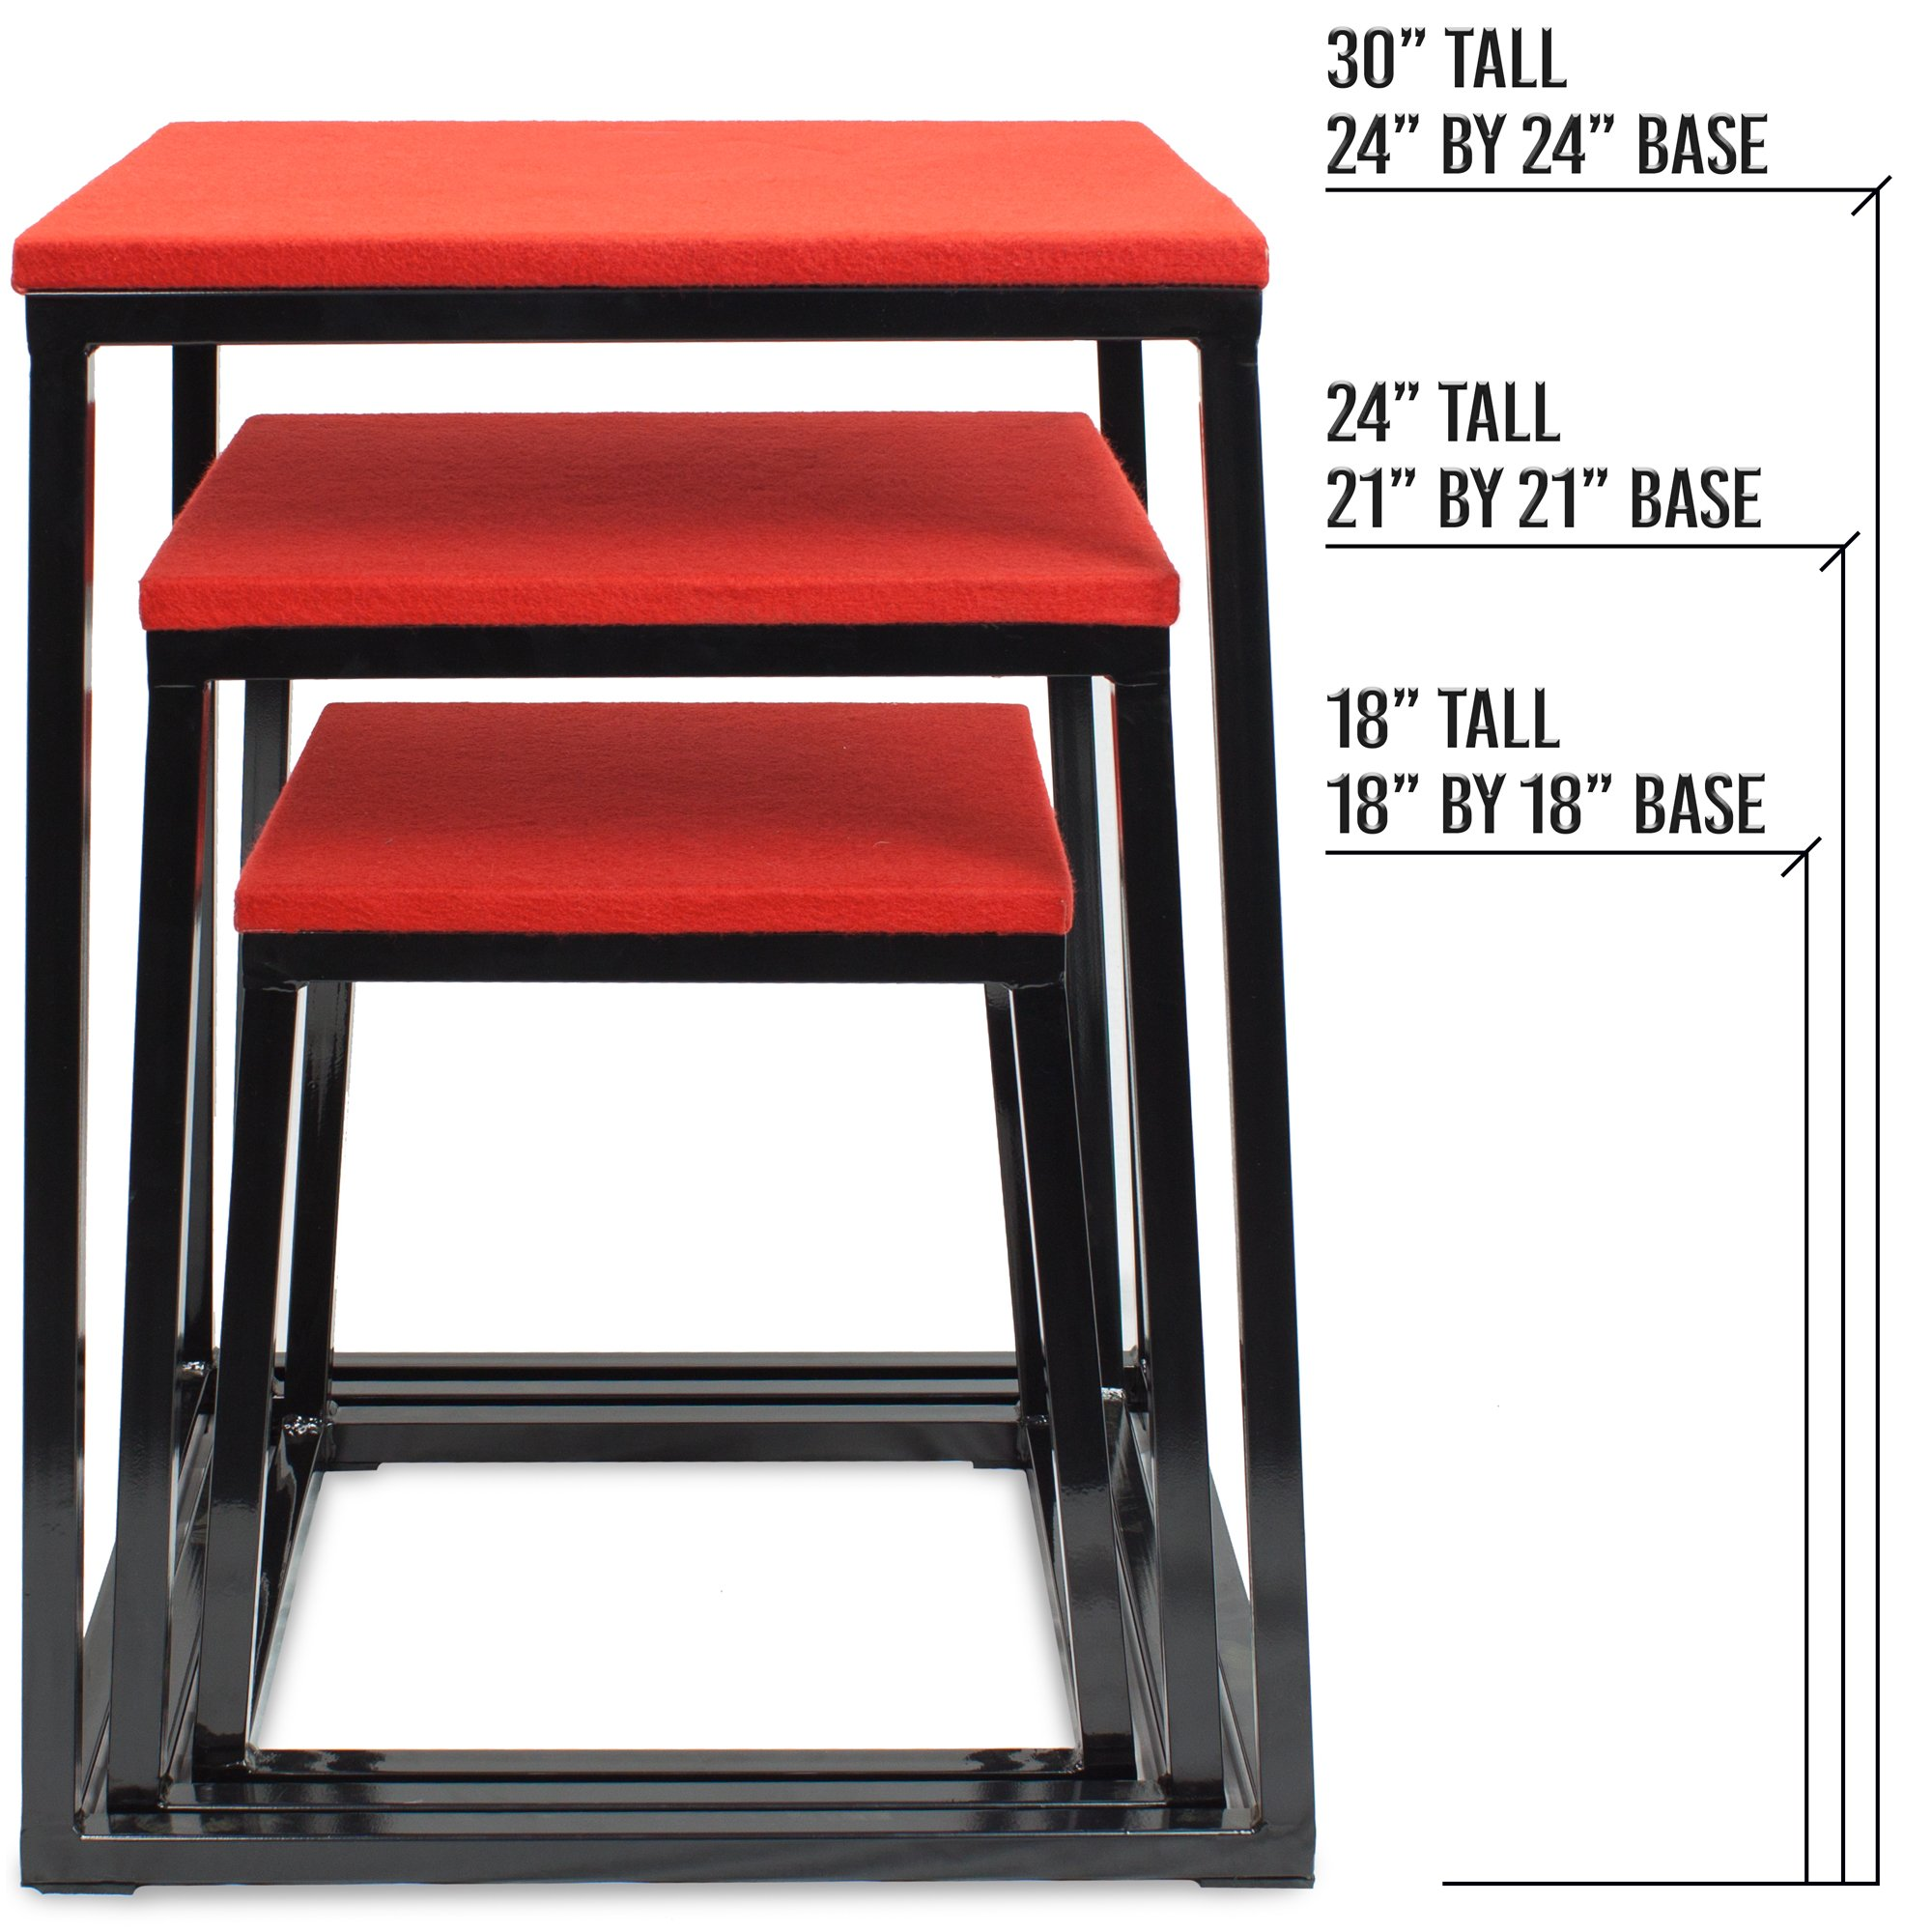 Set of 3 Plyometric Jump Boxes – Step Platform, Fitness Training & Conditioning Equipment for Increasing Vertical, Speed, & Stamina (18''/24''/30'') by Crown Sporting Goods by Crown Sporting Goods (Image #4)